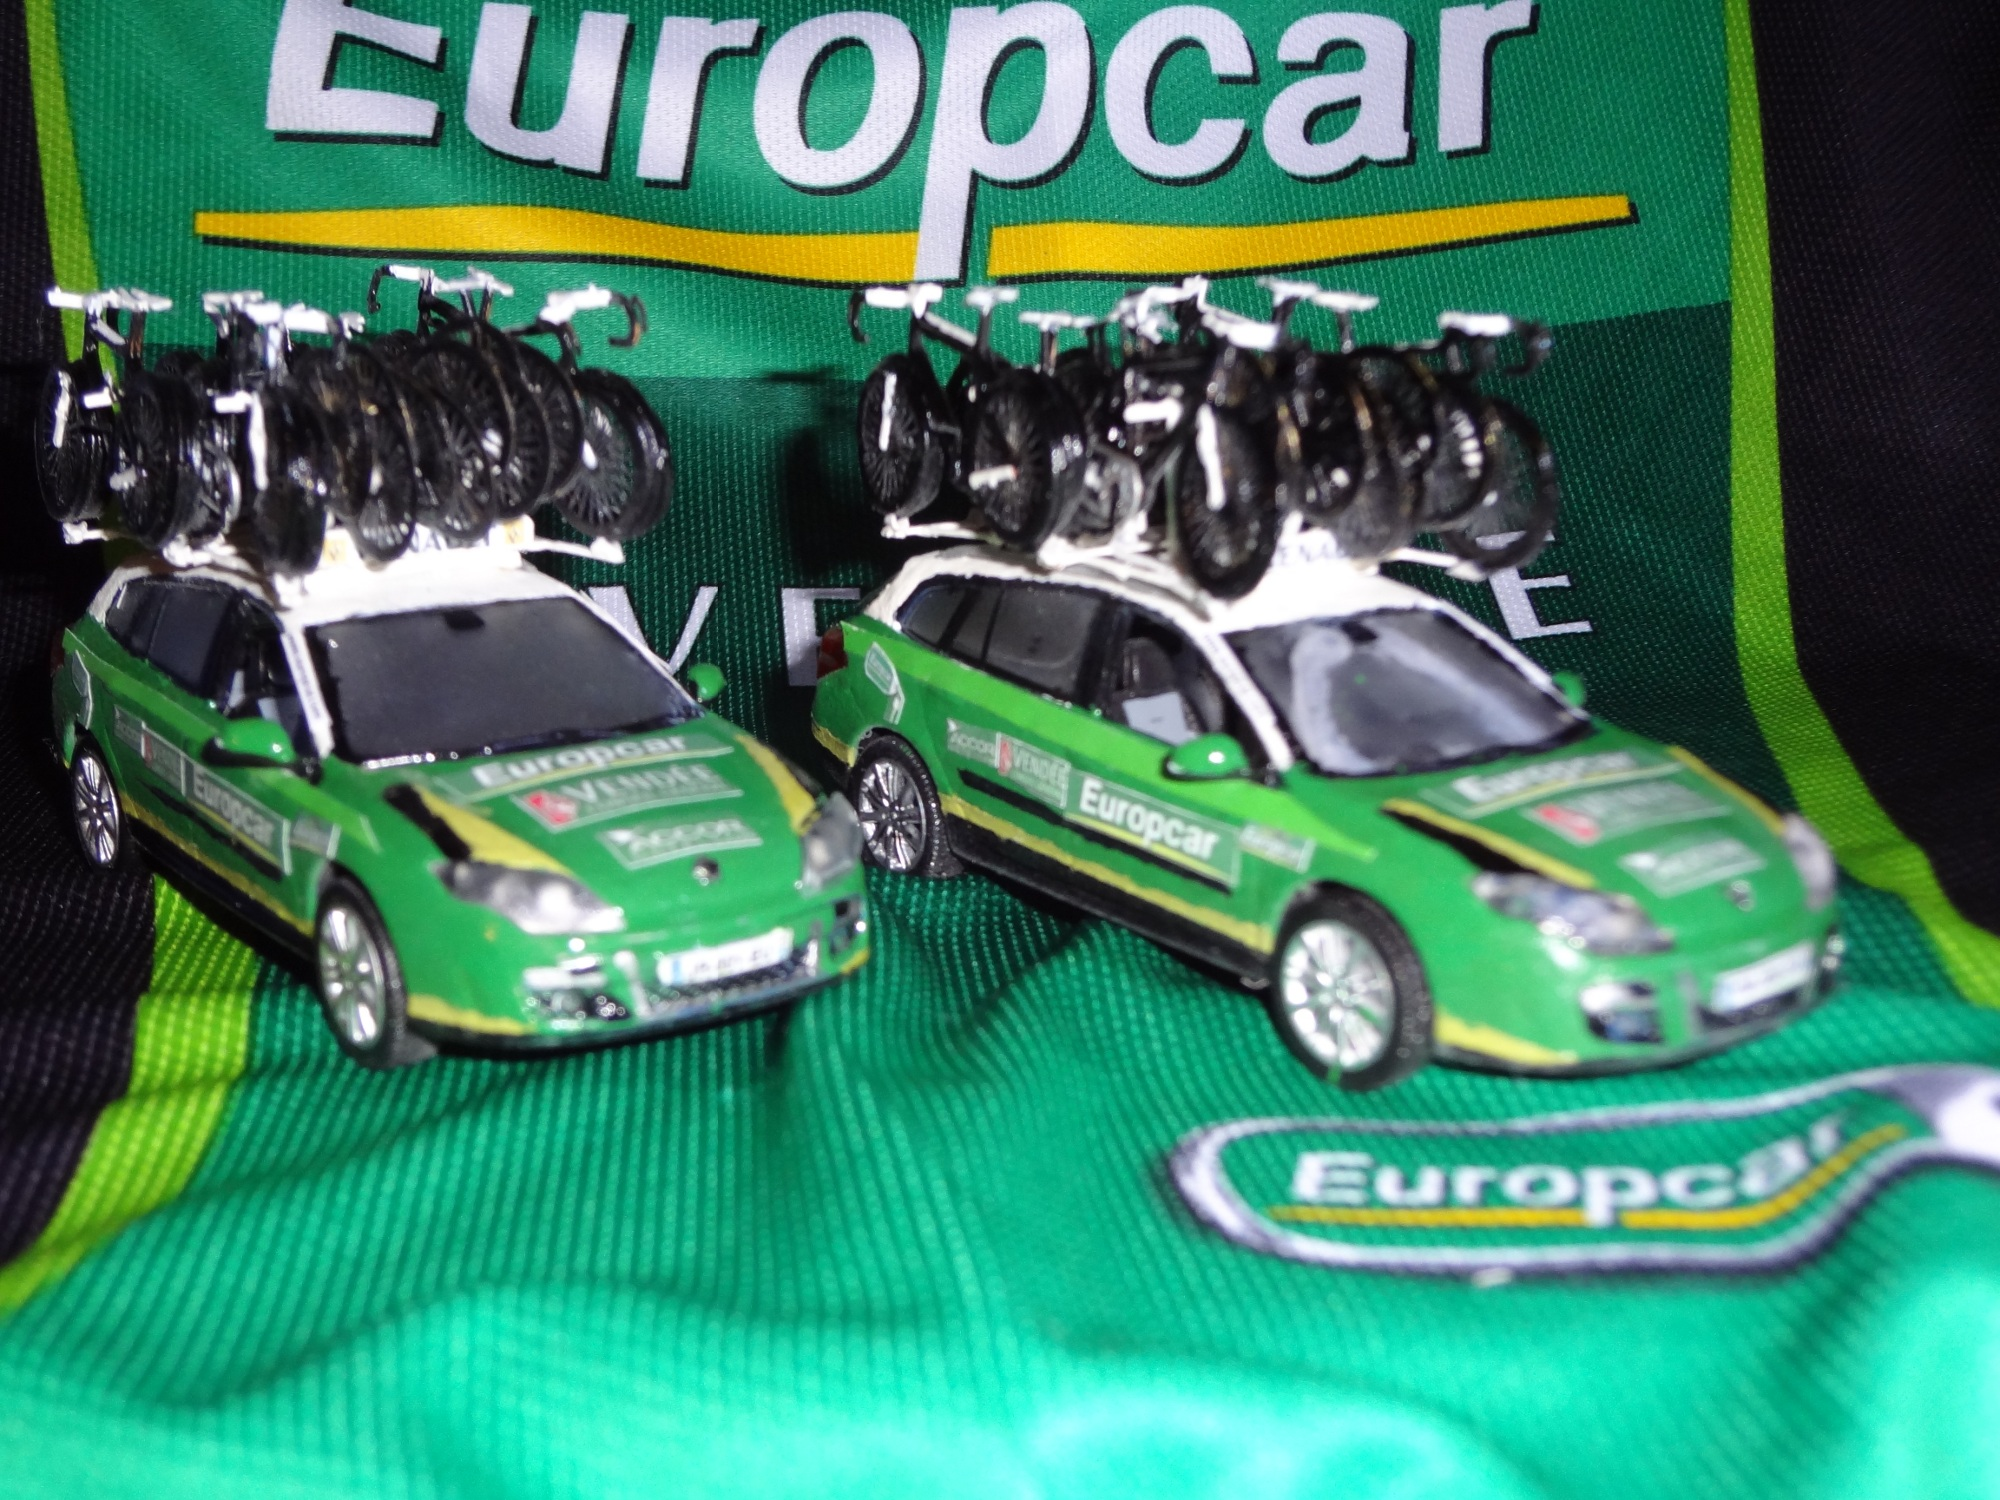 voitures assistances team europcar saison 2012 r alisations vincentounet photos club. Black Bedroom Furniture Sets. Home Design Ideas